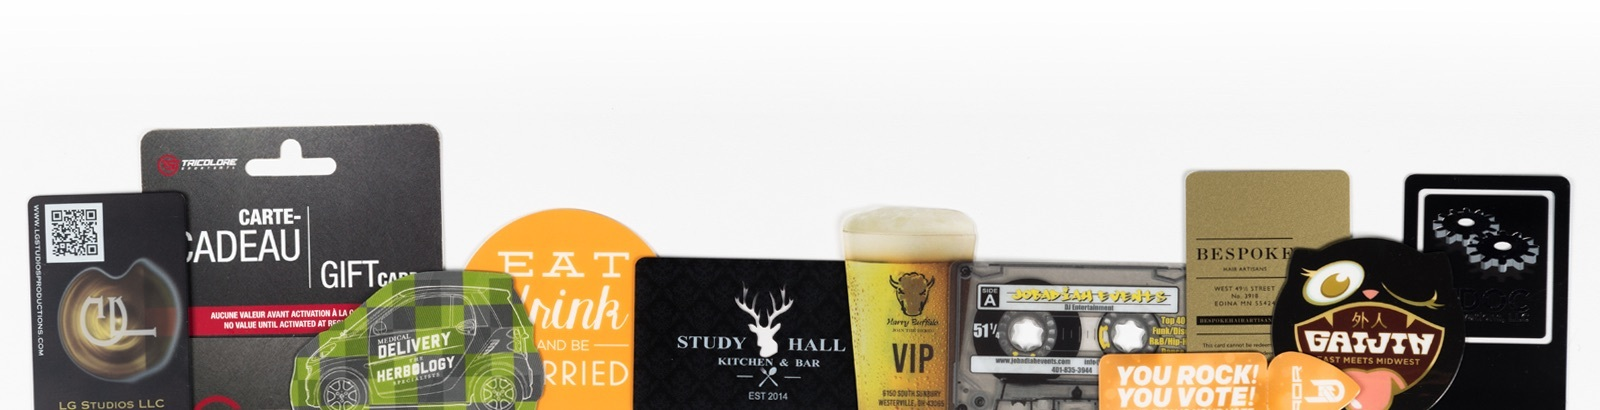 Plastic Printers prints plastic business cards, clear business cards and gift cards—in every shape and size imaginable.